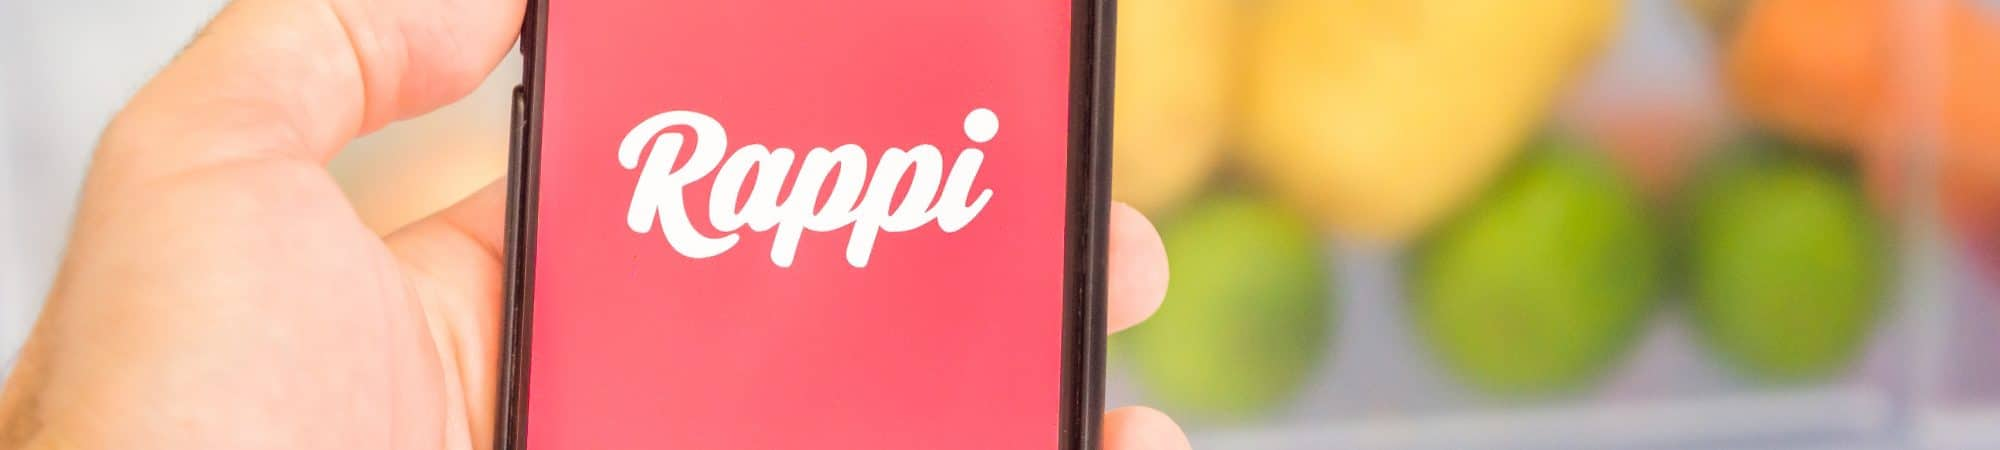 Rappi app will have customer service by WhatsApp